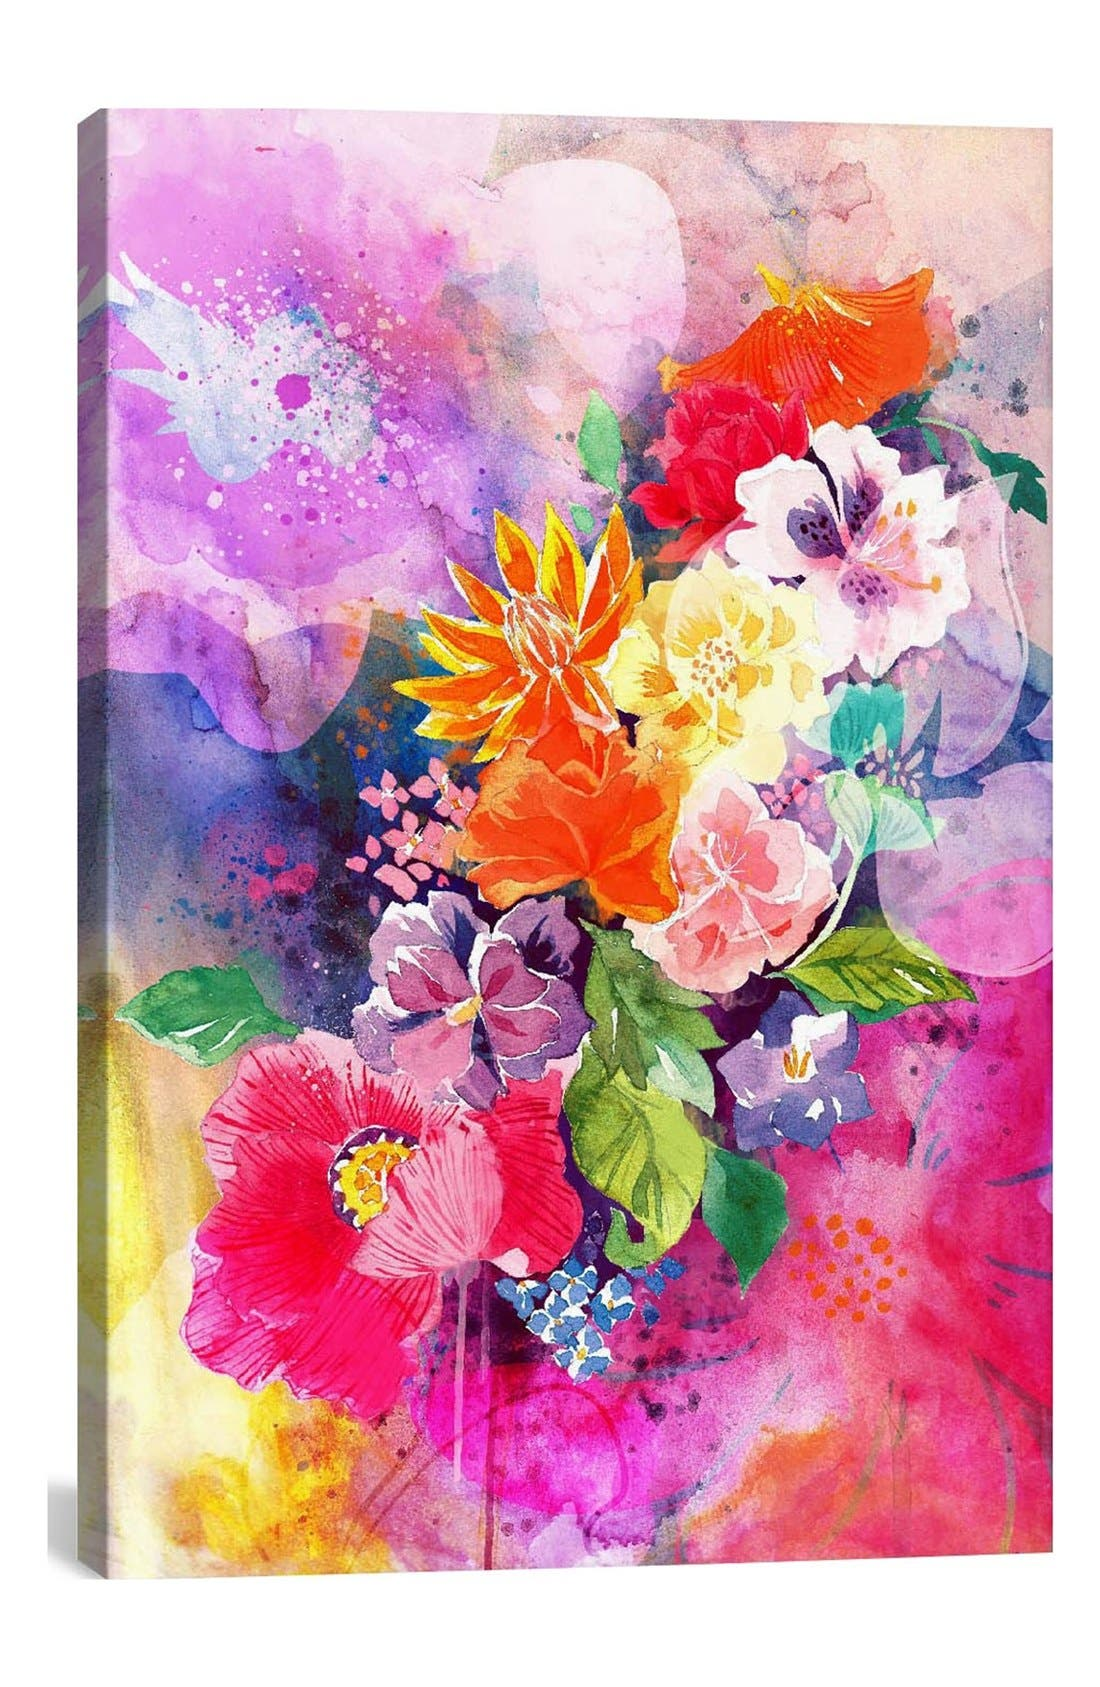 'Spring Flowers - DarkLord' Giclée Print Canvas Art,                         Main,                         color, Pink/ Multi